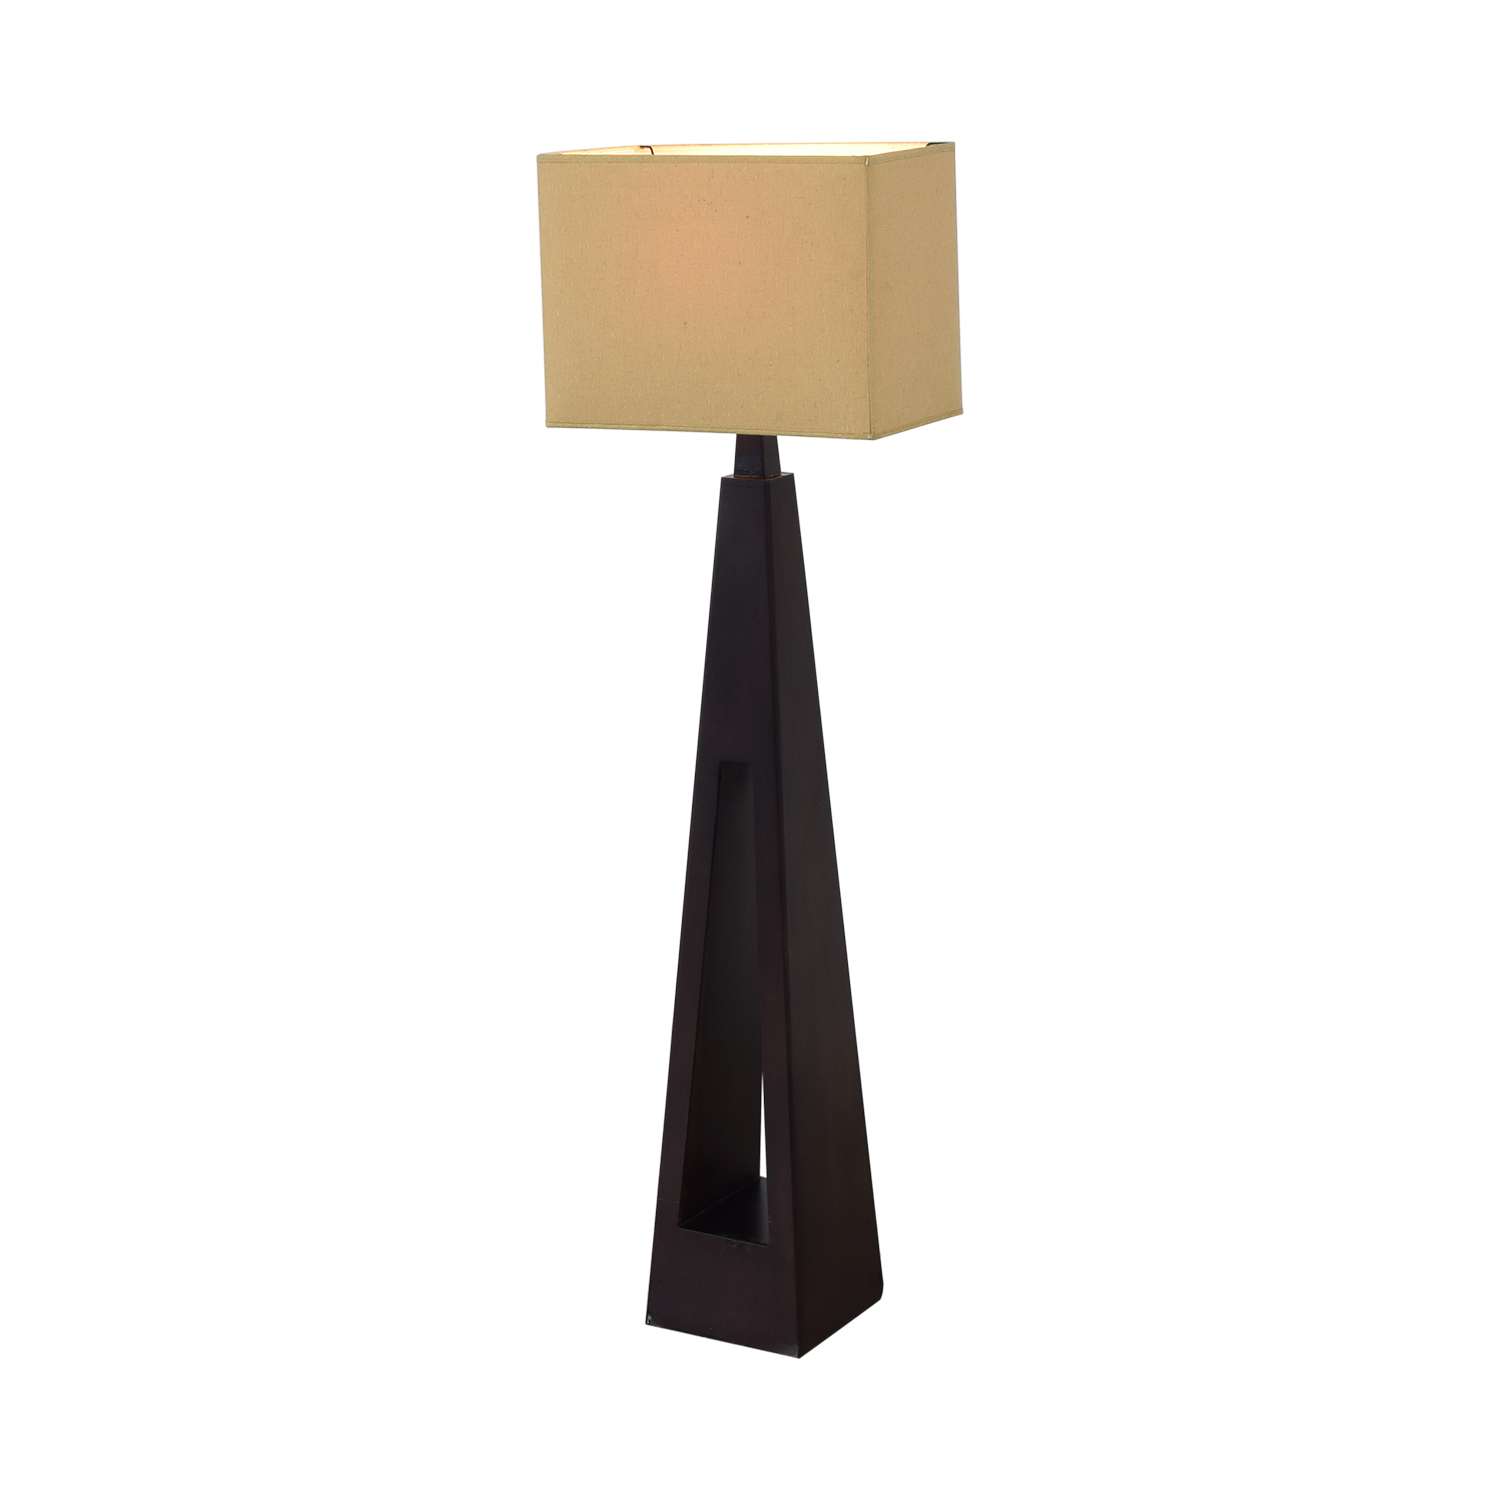 Tarogo Tarogo Triangular Wood Base Floor Lamp price